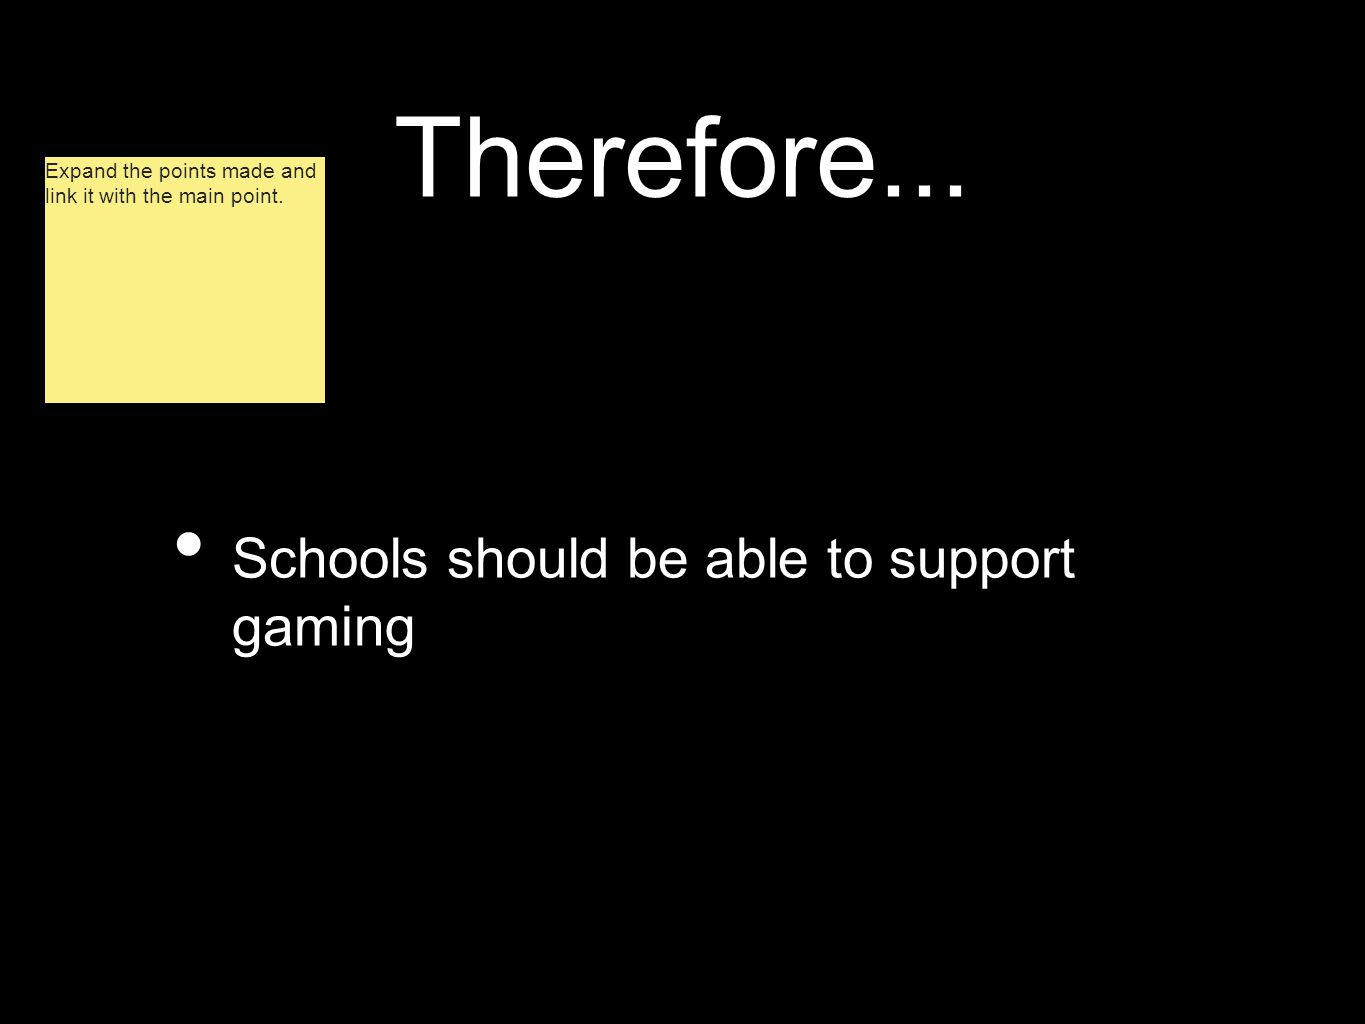 Therefore... Schools should be able to support gaming Expand the points made and link it with the main point.